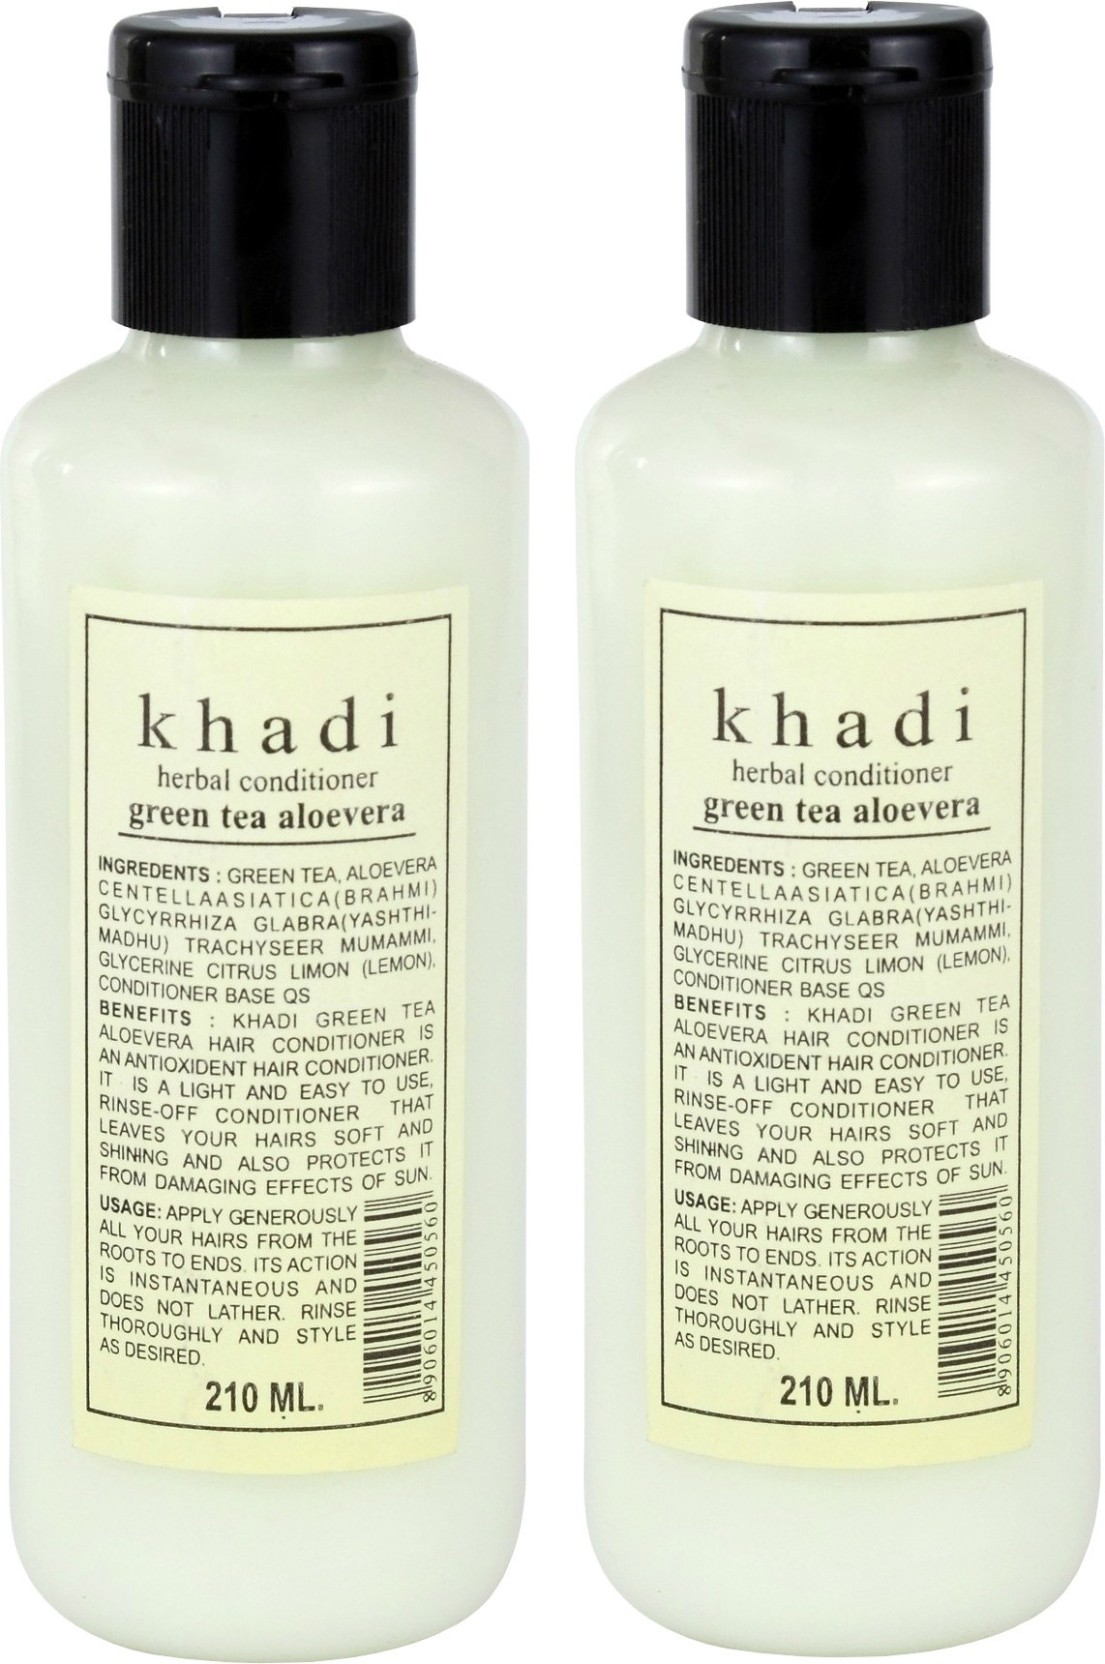 Khadi Natural Green Tea Aloe Vera Hair Conditioner Pack Of 2 Price 130 Ml Home